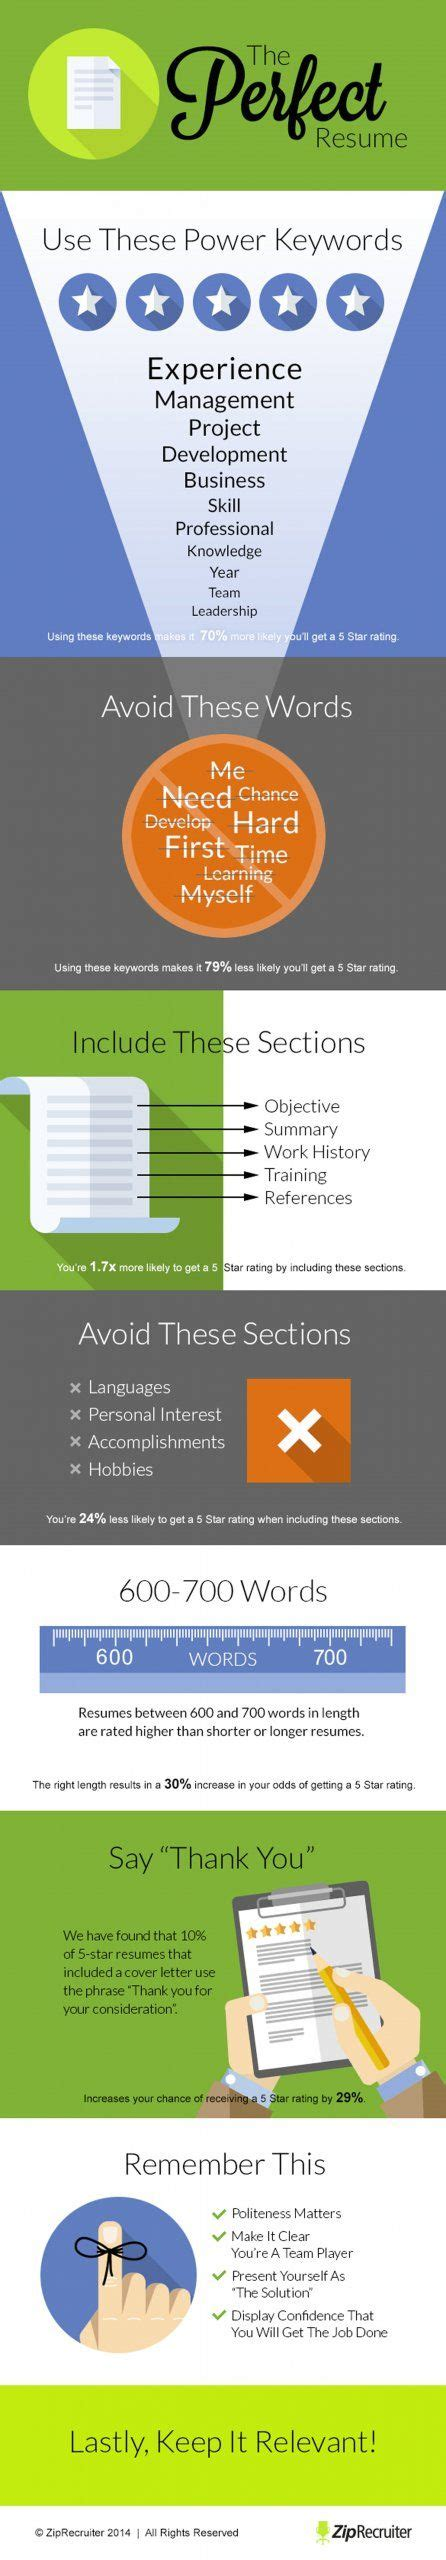 8 secrets to writing the resume resume tips